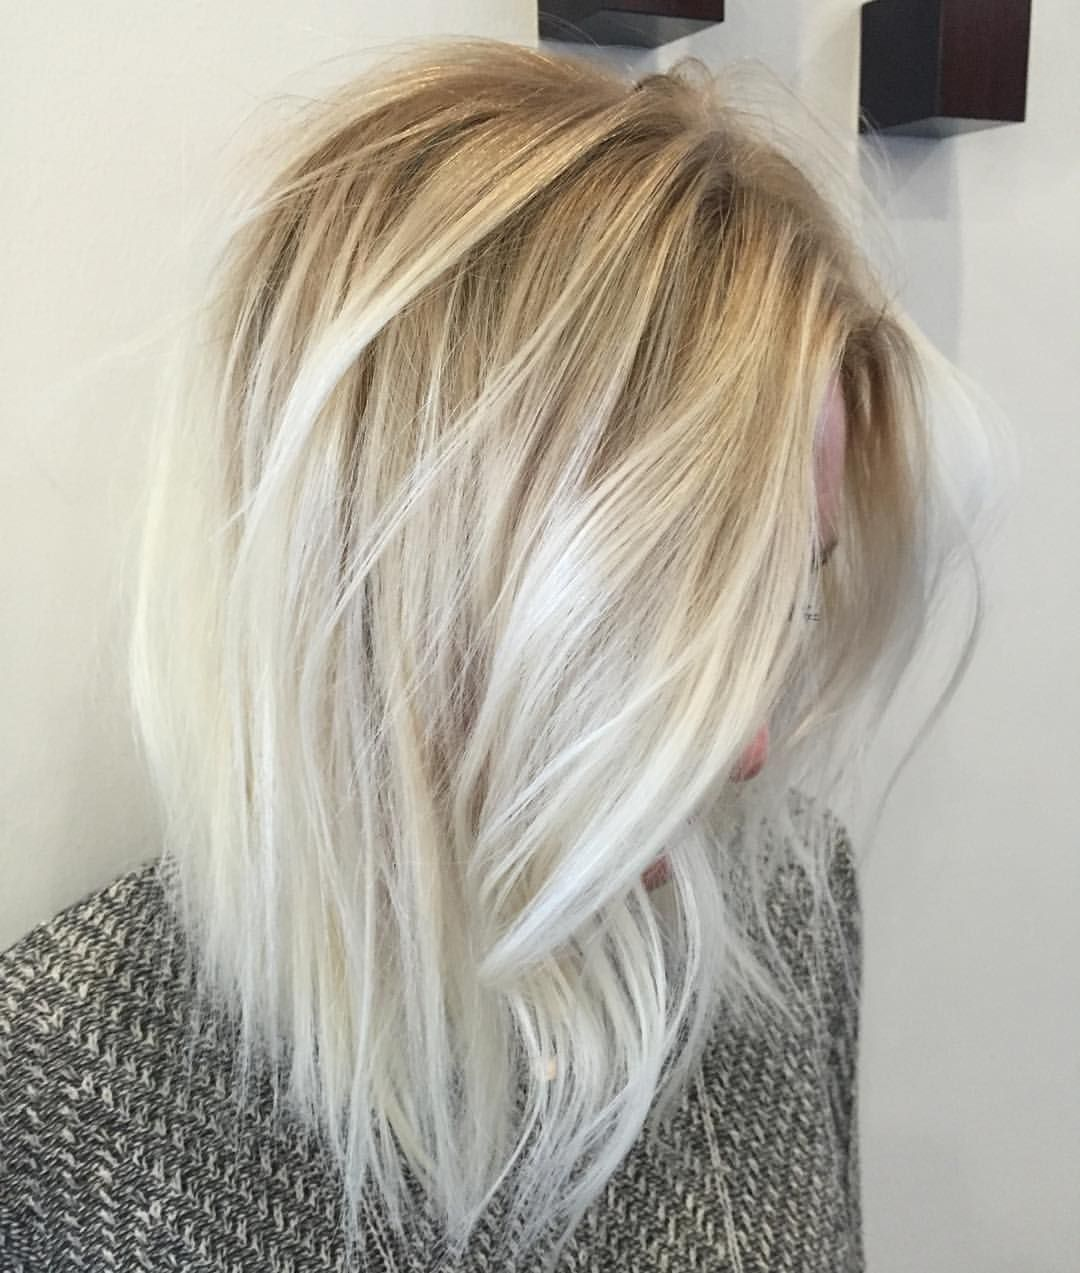 Ice Blonde Balayage Long Bob Super Blonde Hair 83f6e6c794f6